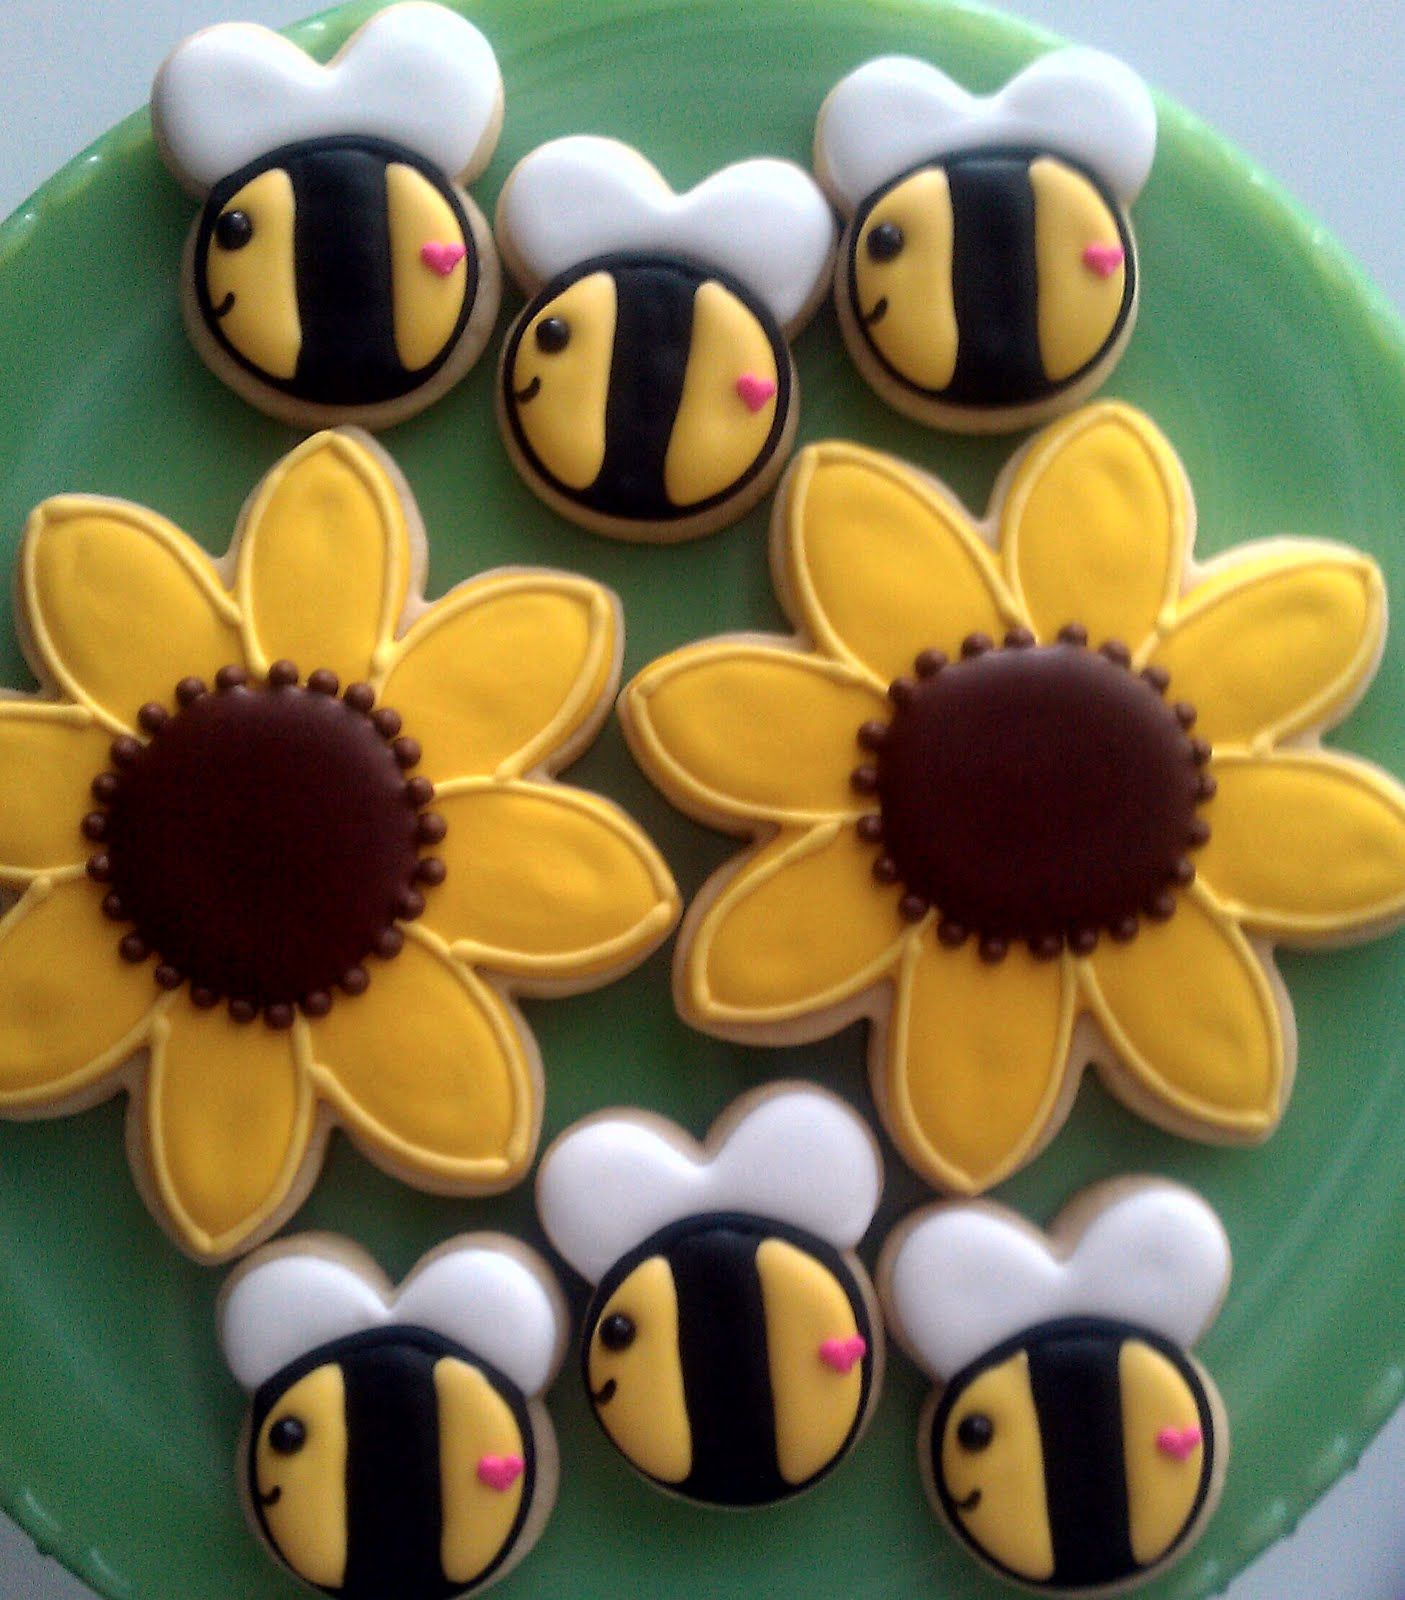 Bumble Bees & Sunflowers